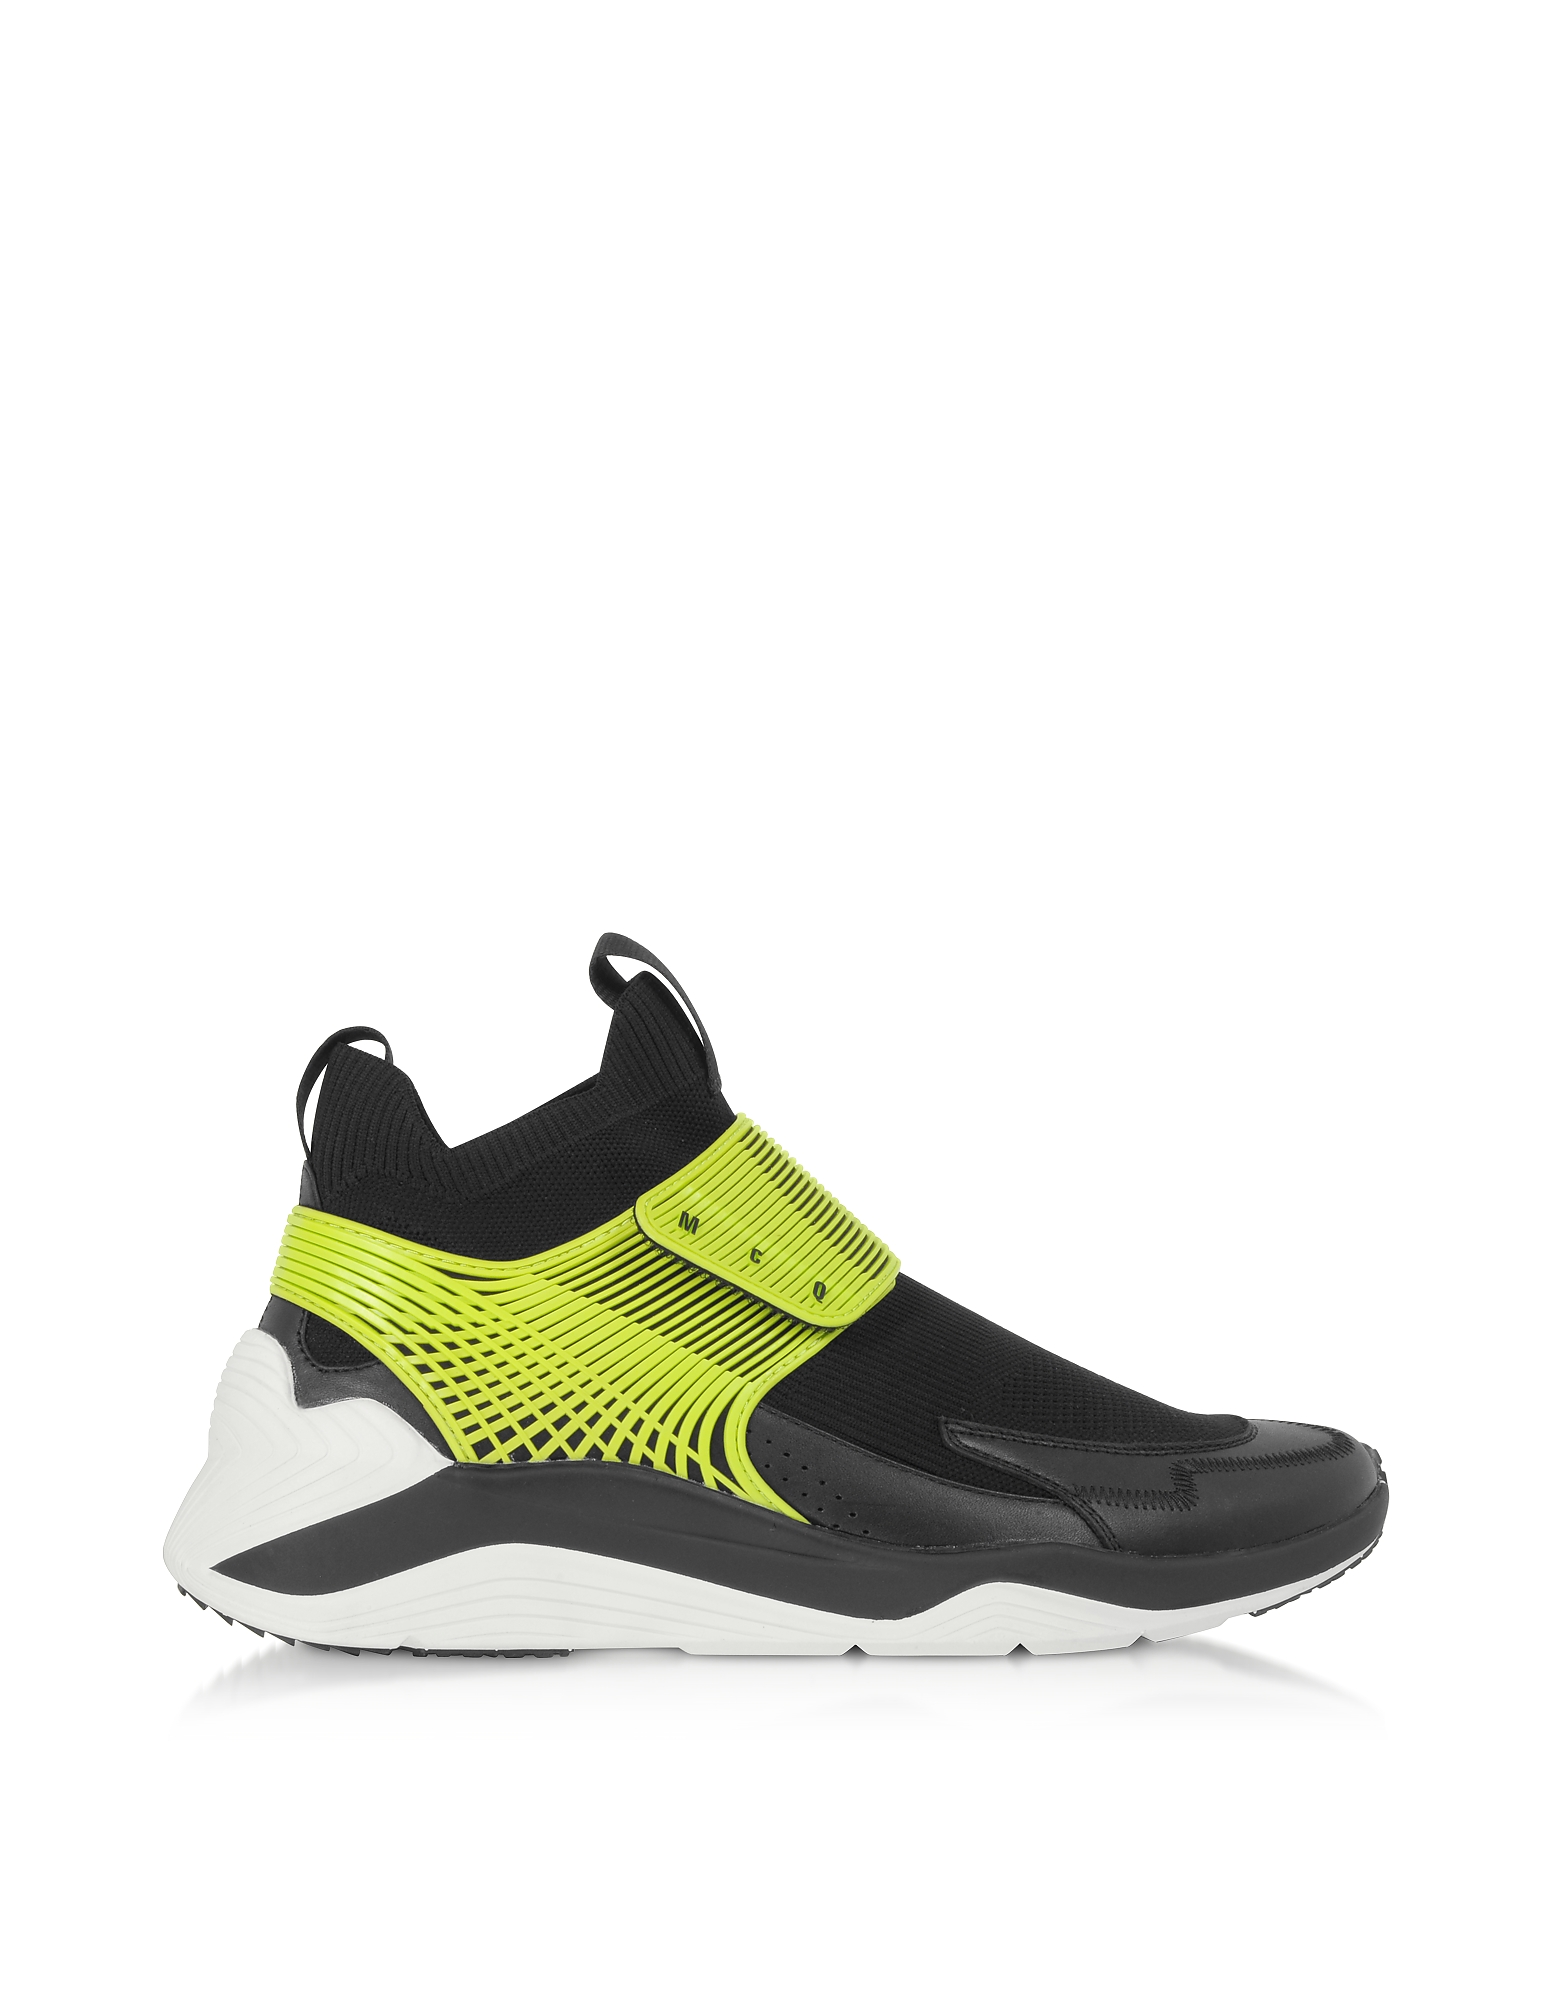 McQ Alexander McQueen Designer Shoes, Hikaru 3.0 Black Lime Calf Leather and Fabric Men